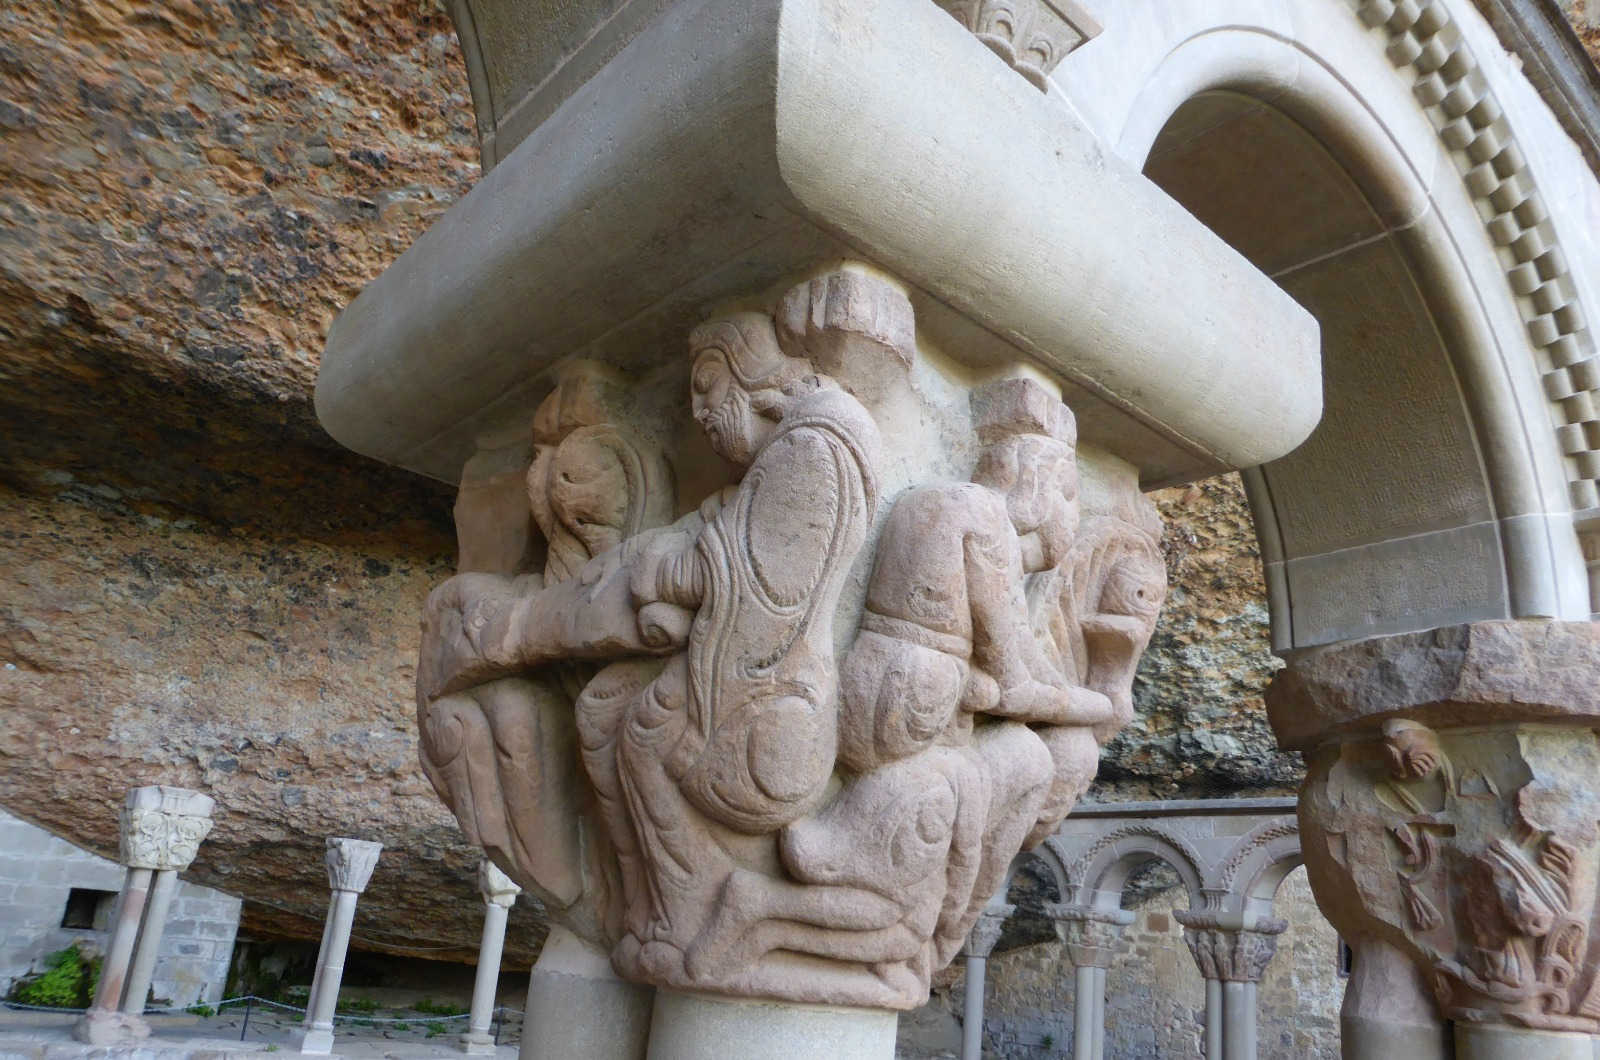 A close up of a capital carved in stone and depicting Christ with his disciples in the monastery of San Juan de la Peña on our Cultural Holiday Spain